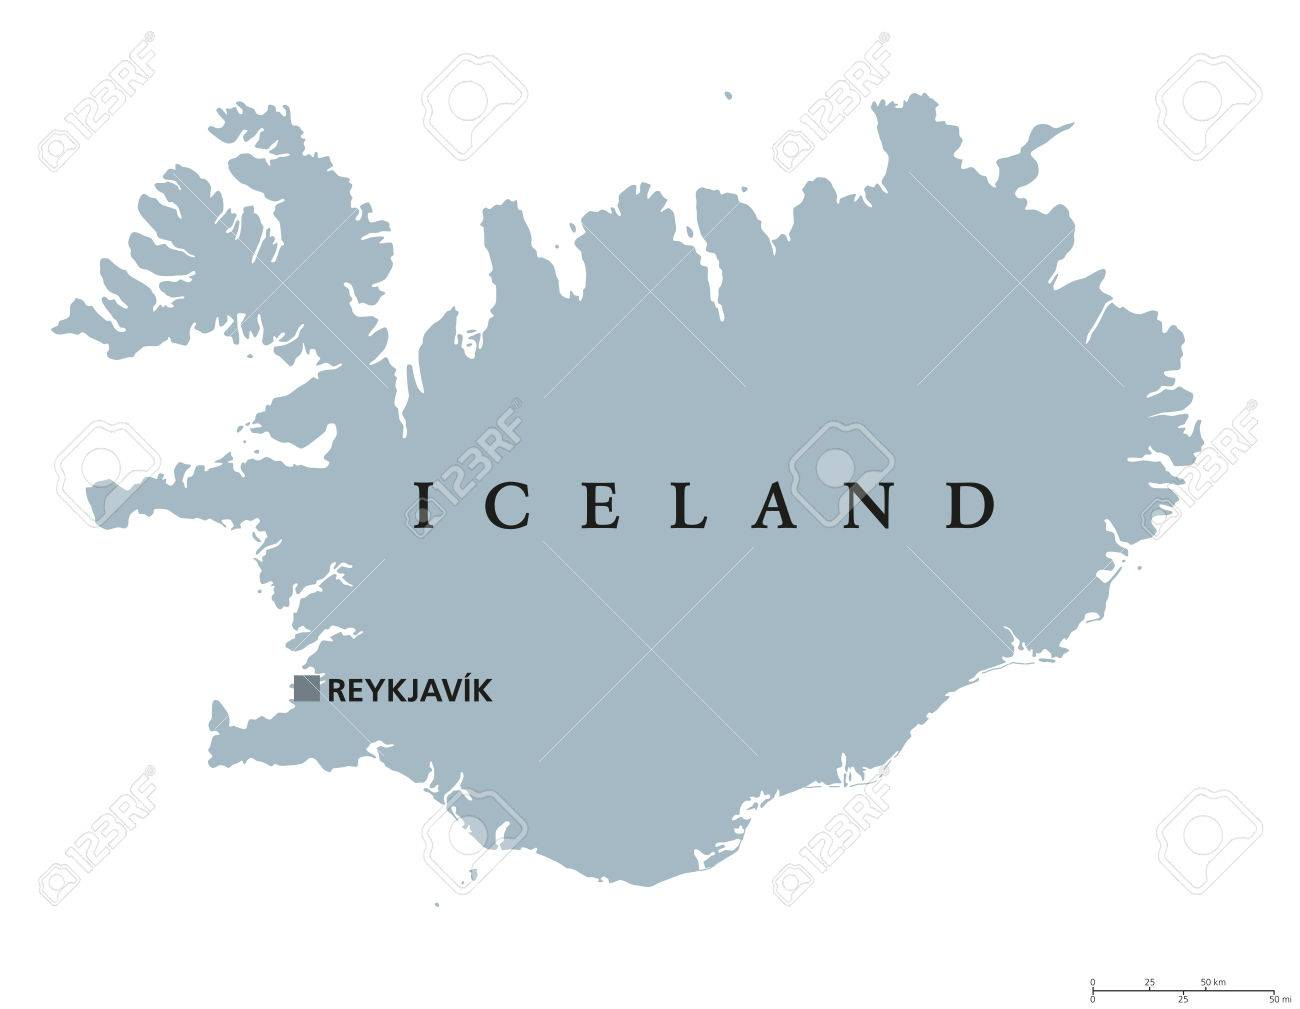 Iceland Political Map With Capital Reykjavik. Republic And Nordic ...